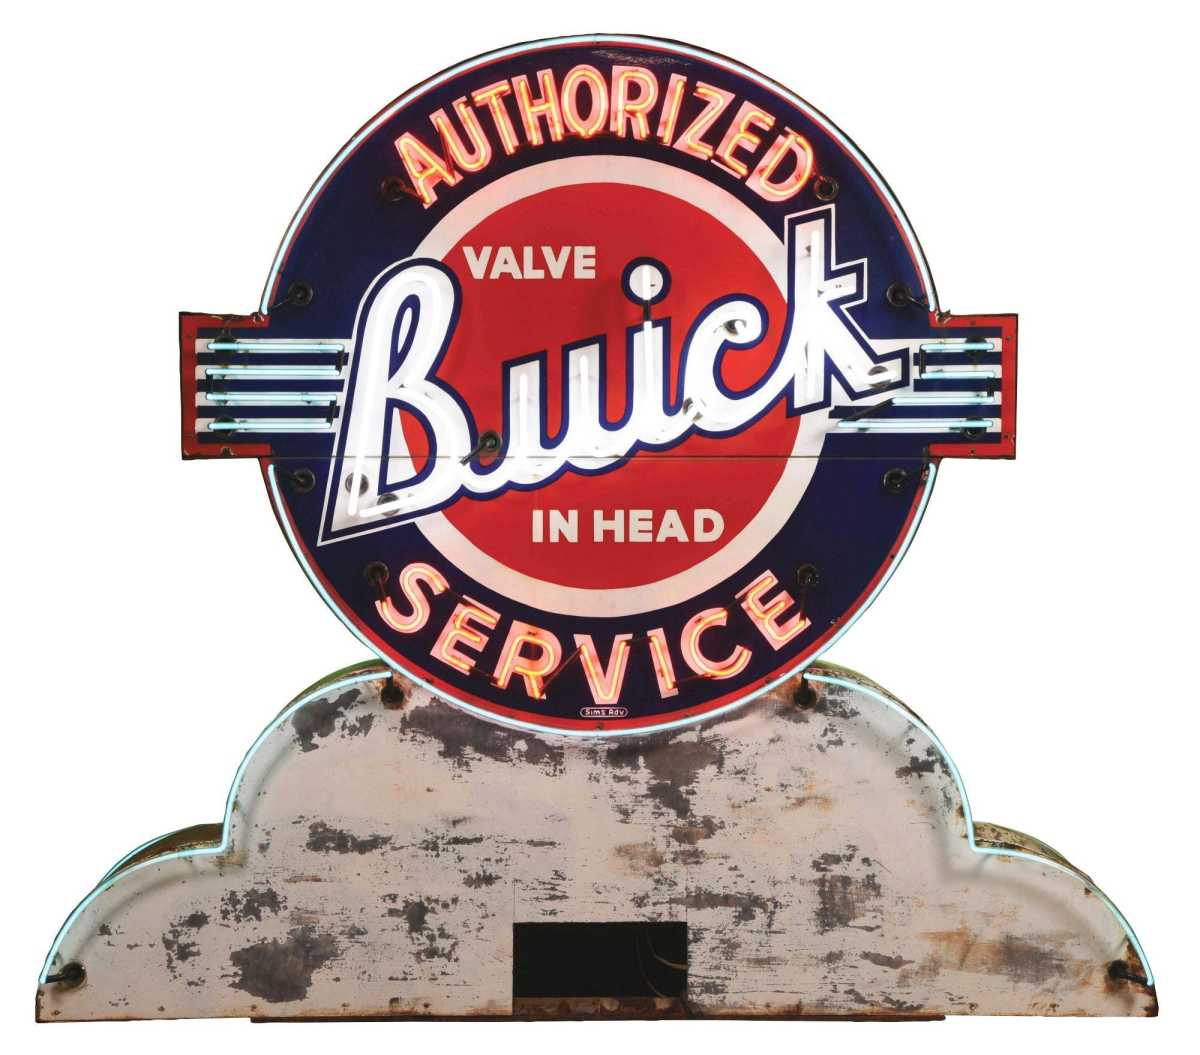 This rare double-sided Chevrolet Super Service and Buick Authorized Service porcelain neon sign sold for $45,600 against an estimate of $15,000-$30,000.